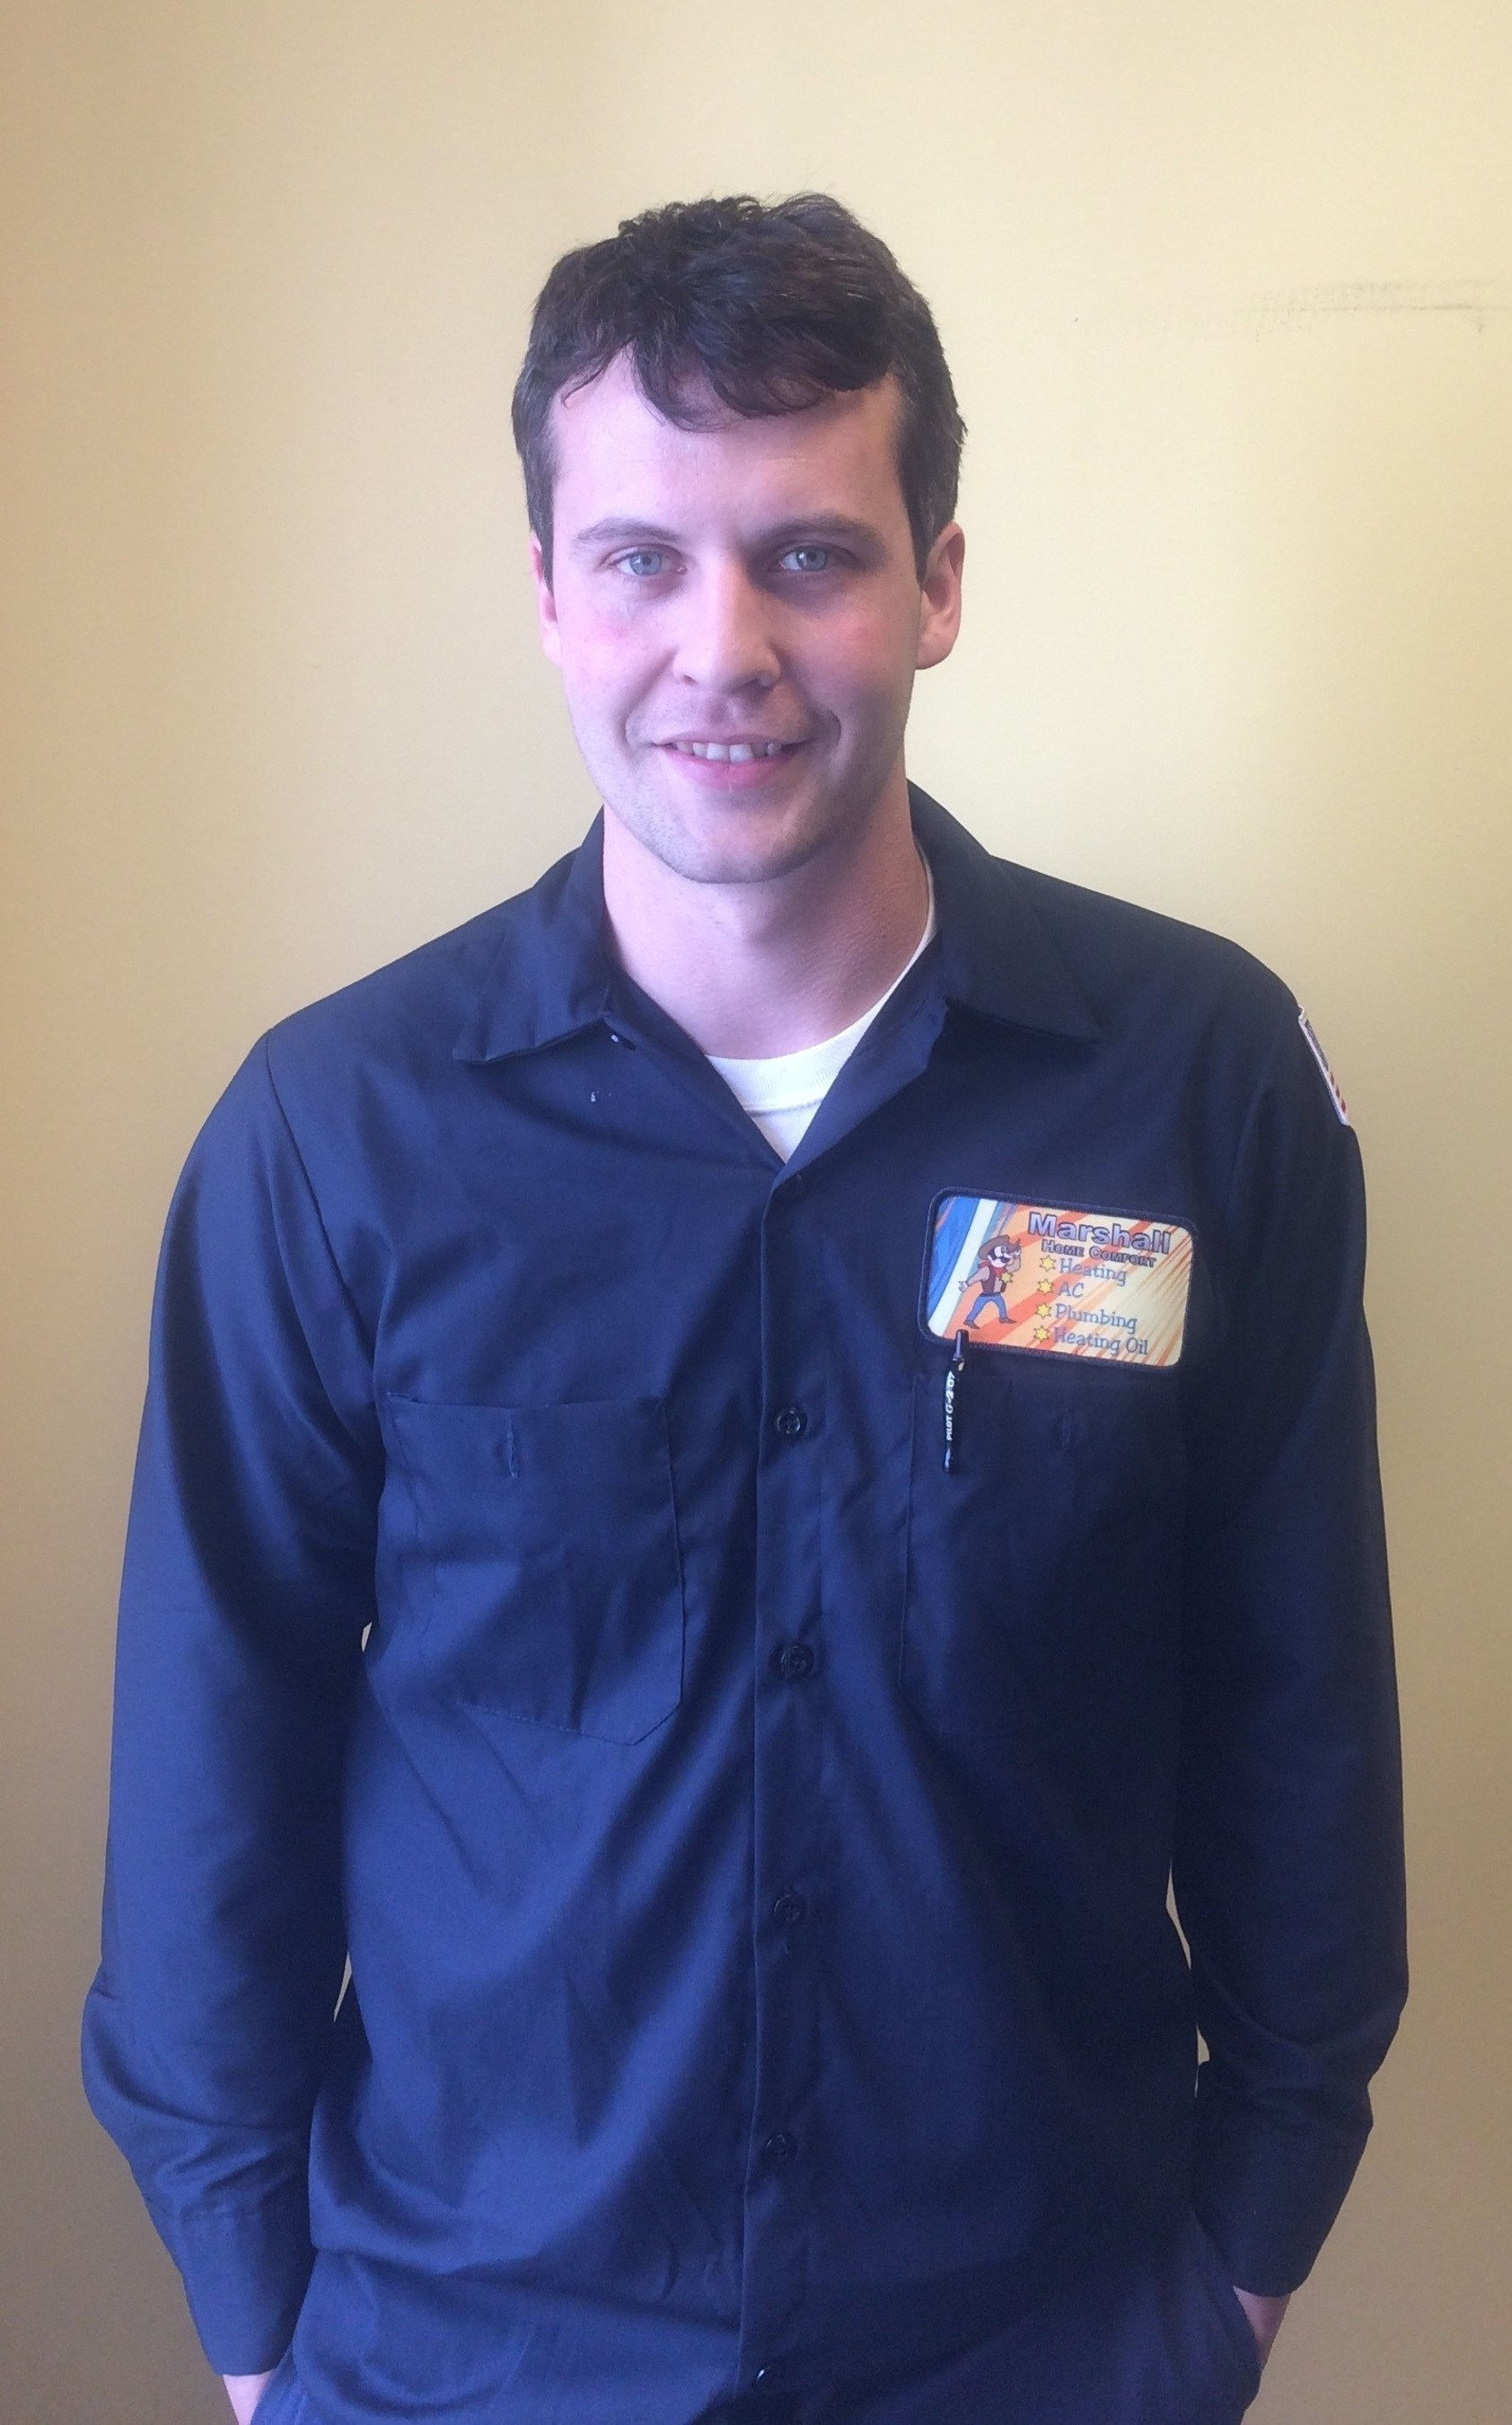 Marshall Services adds electrical services to better serve local Eastern Pennsylvania homes.